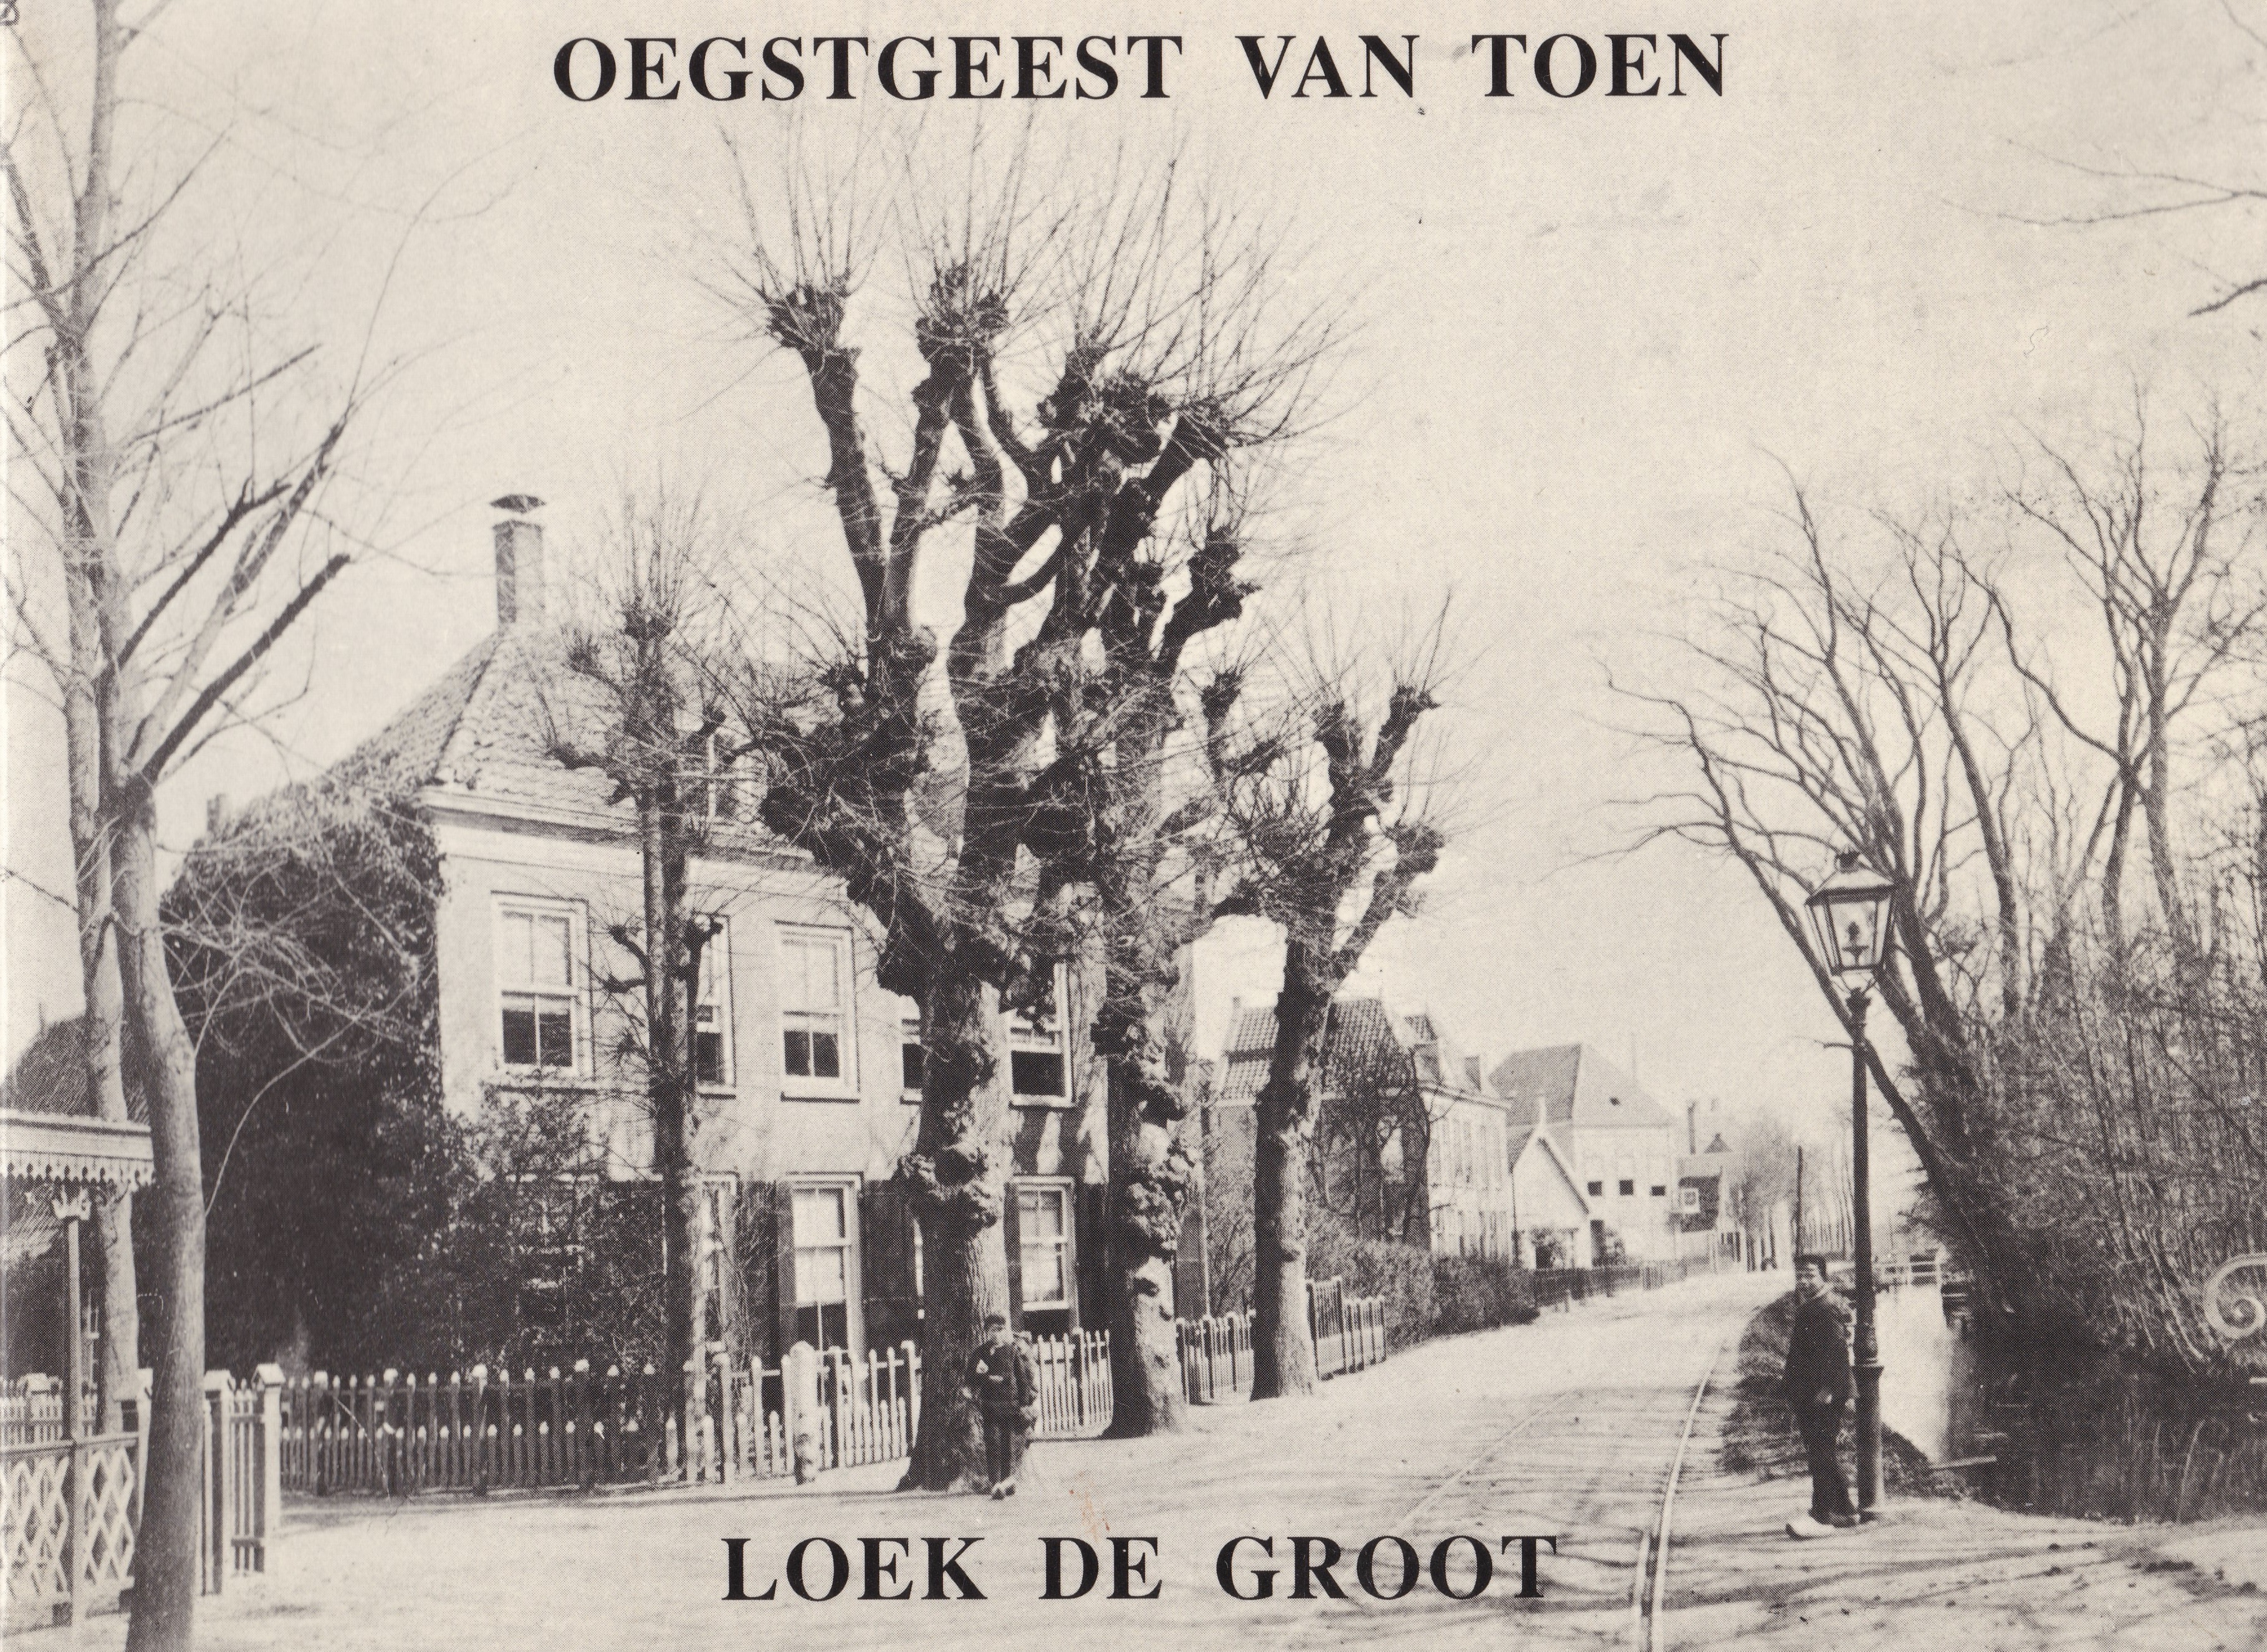 https://oudoegstgeest.nl/images/publicaties/foto_De_Olmen_-_Loek_de_Groot_0001.jpeg